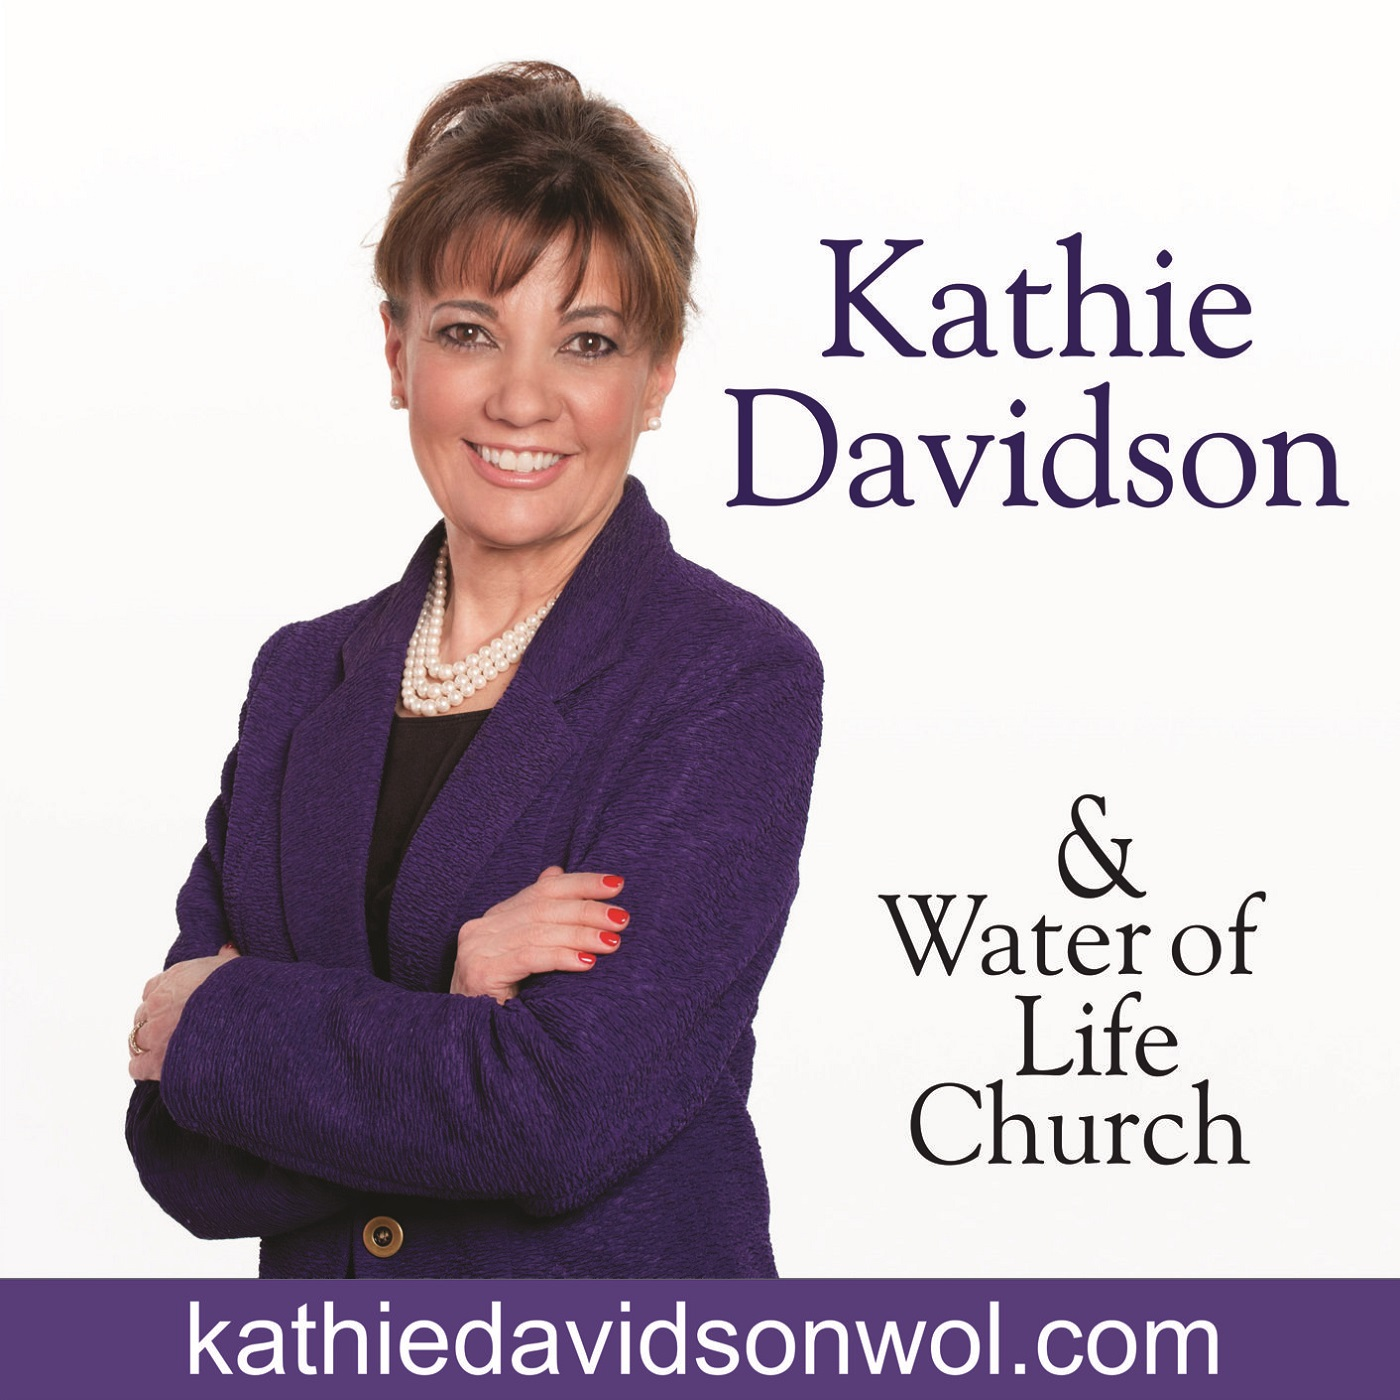 Kathie Davidson and Water of Life Church